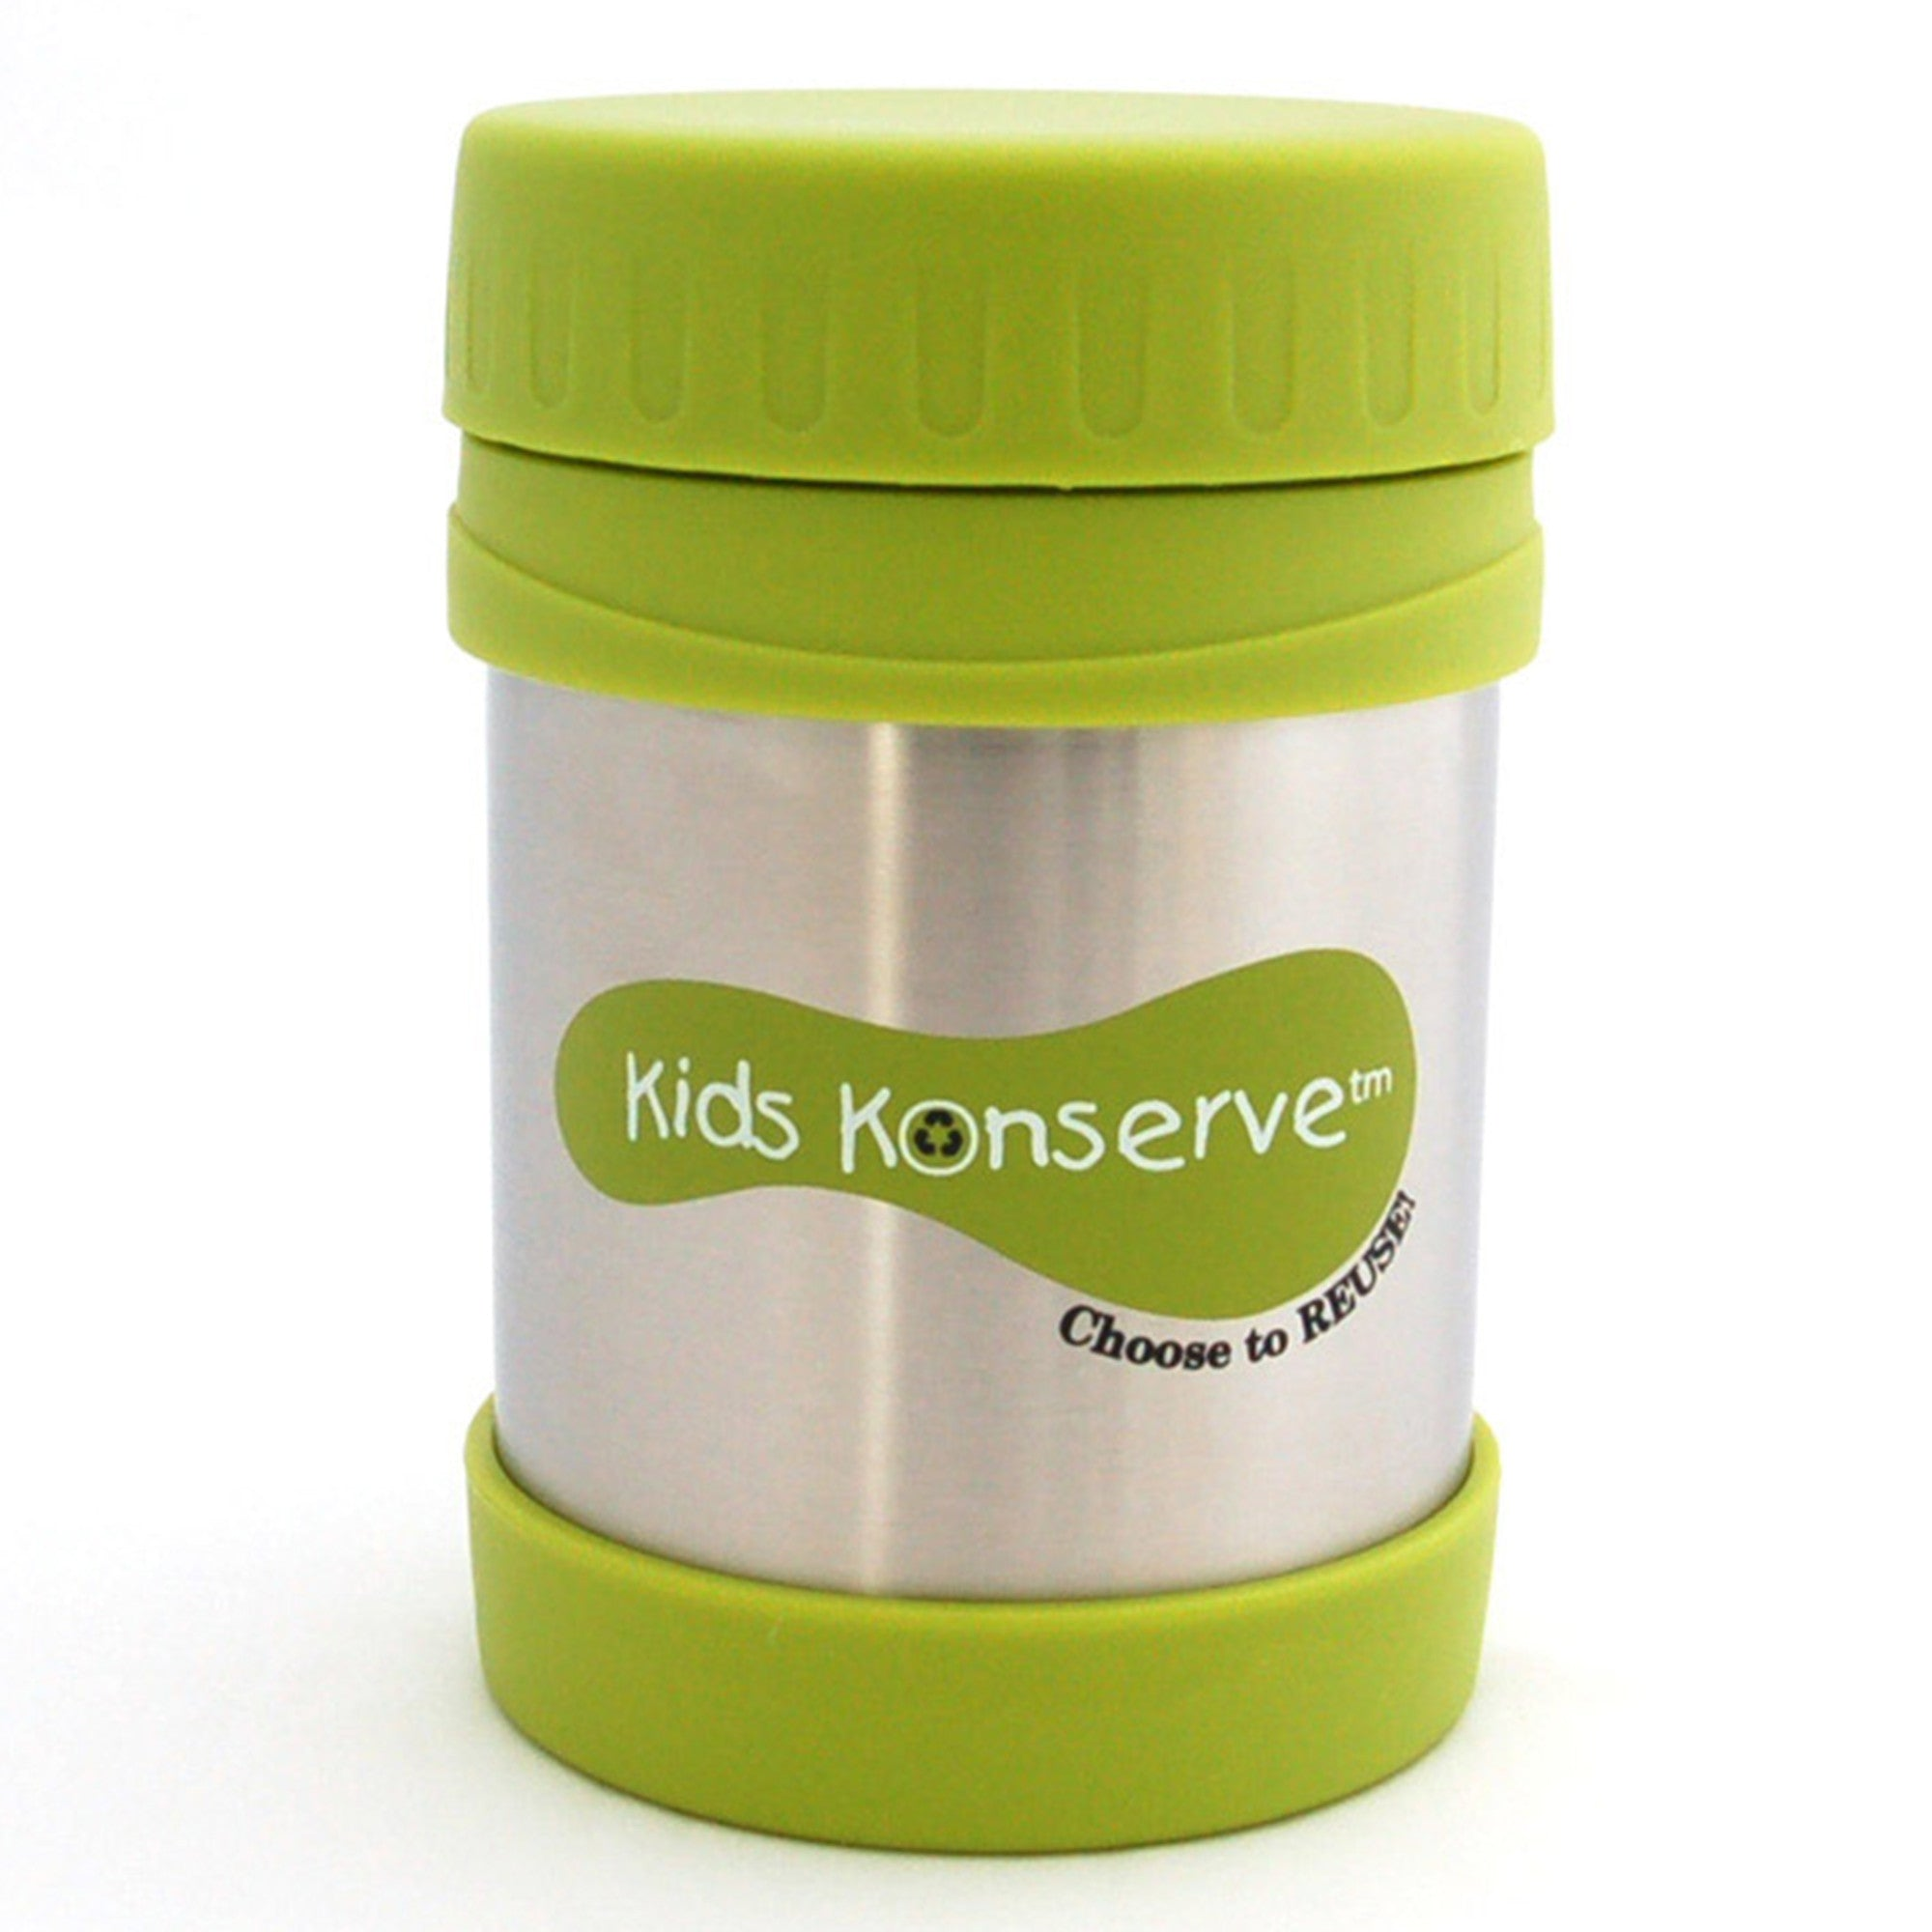 Kids Konserve Insulated Food Jar   - Kids Konserve - Little Earth Nest - 2